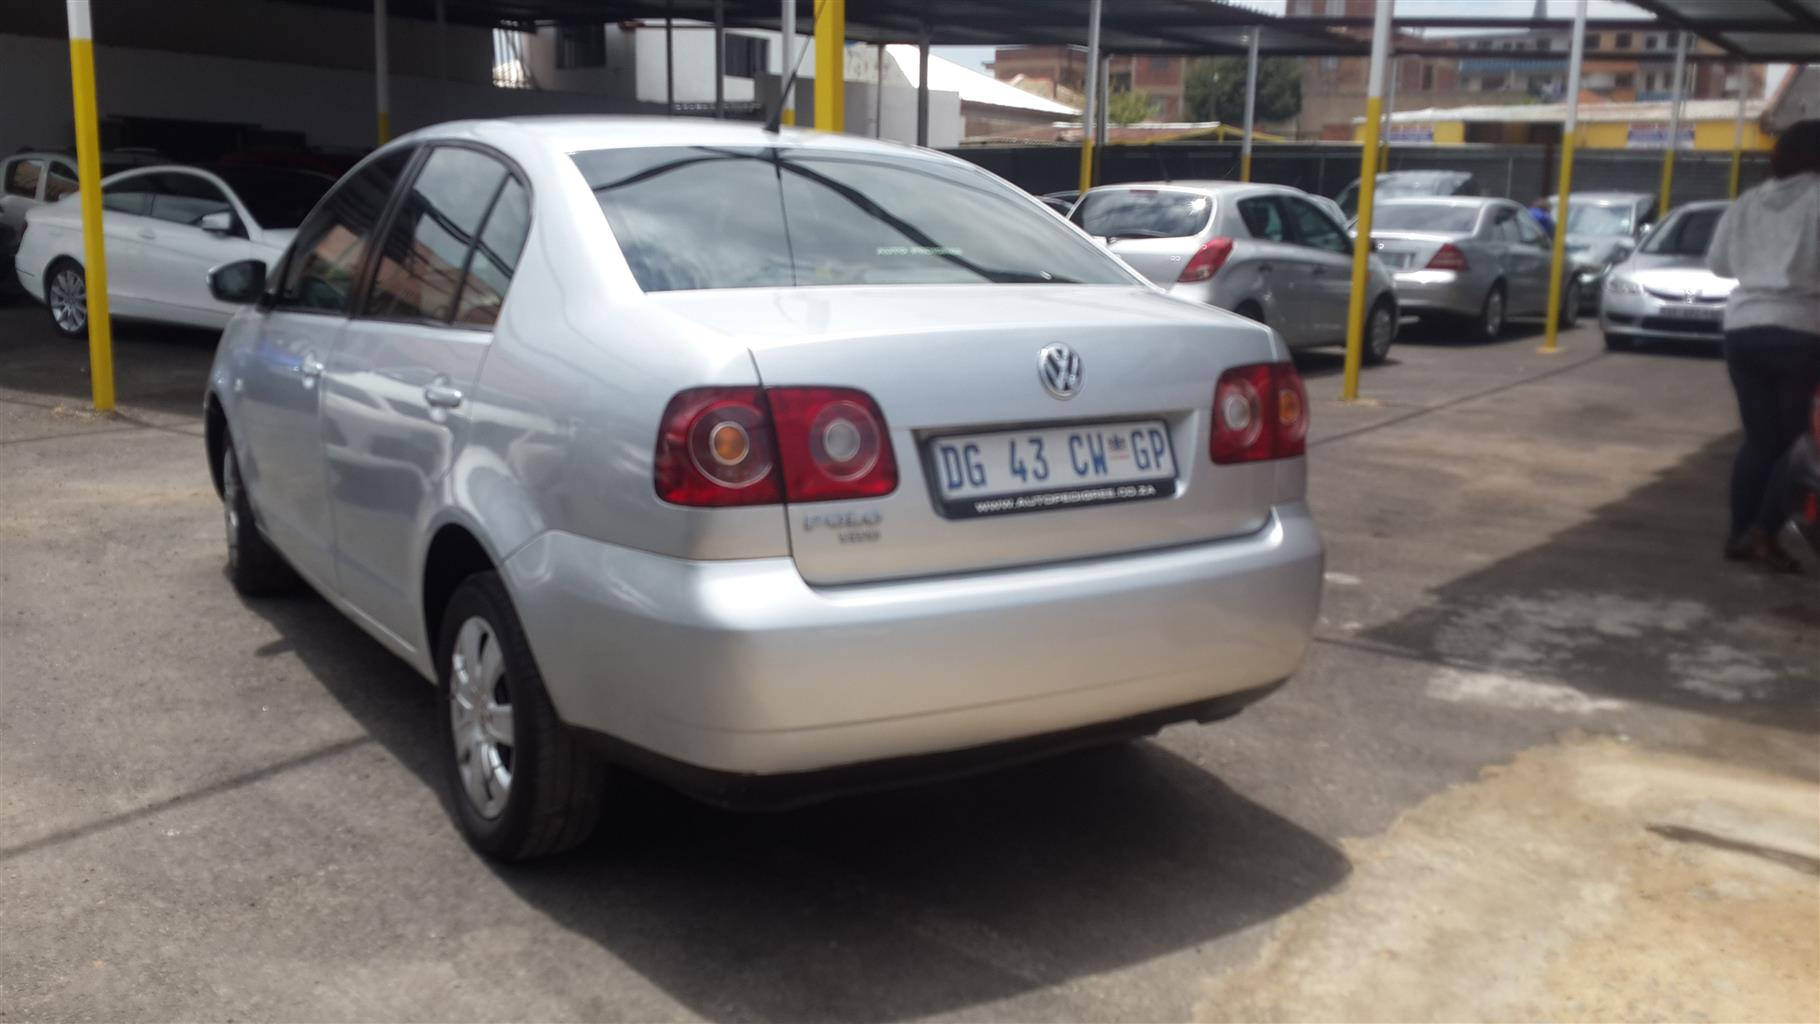 Polo Vivo For Sale In Gauteng Olx - Prism Contractors